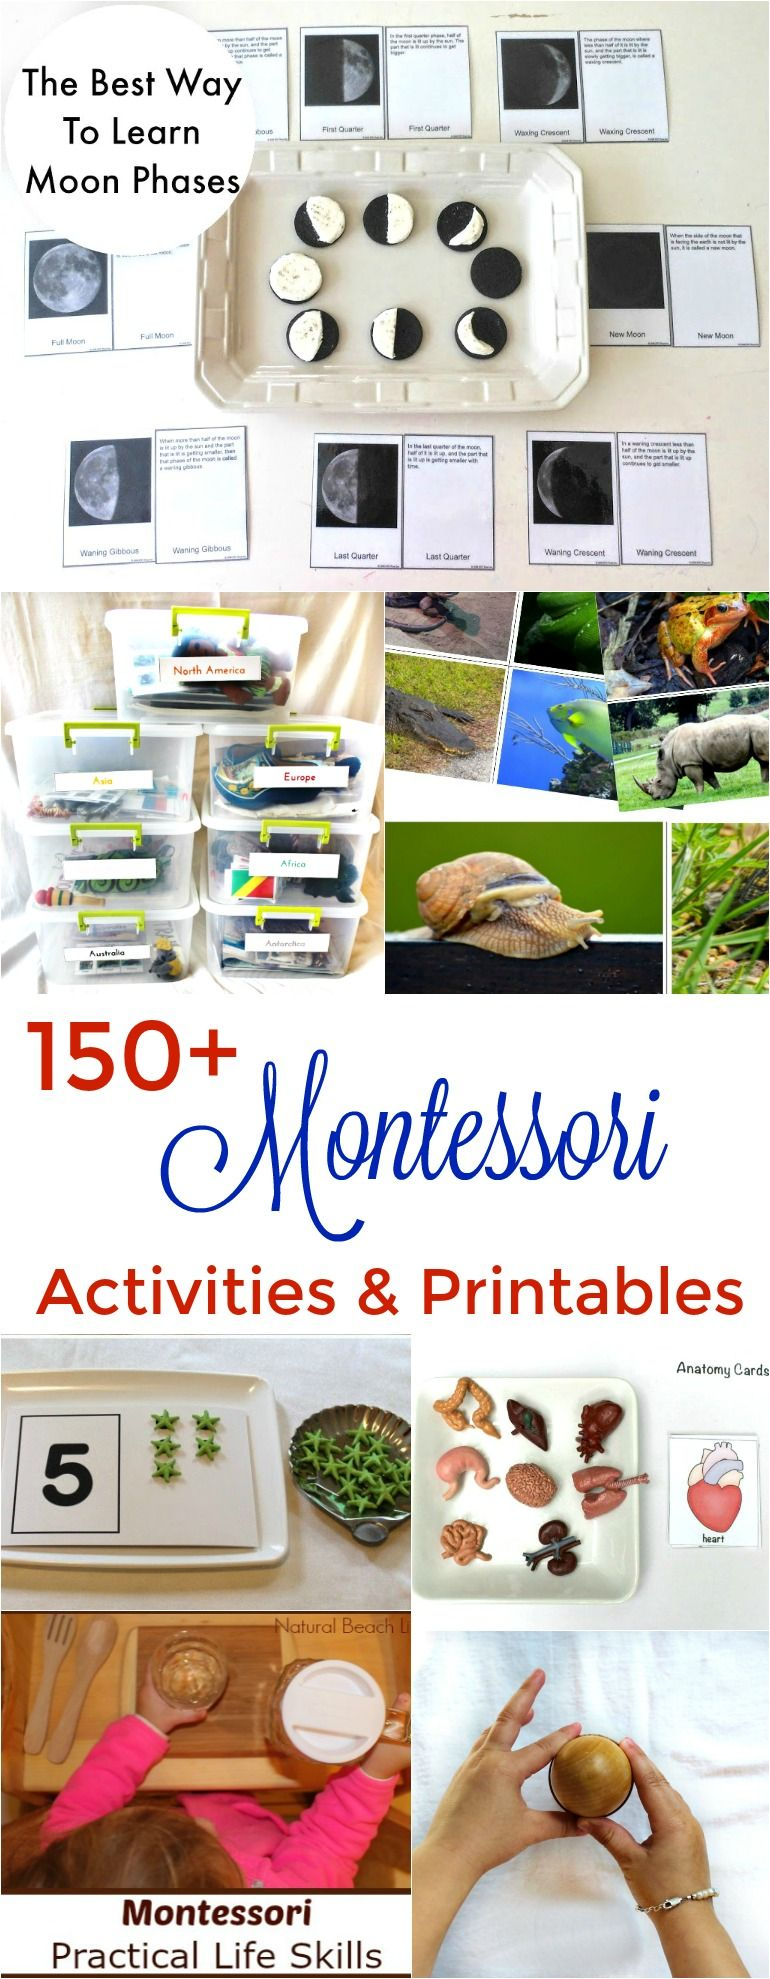 150+ Amazing Montessori Activities and Free Printables